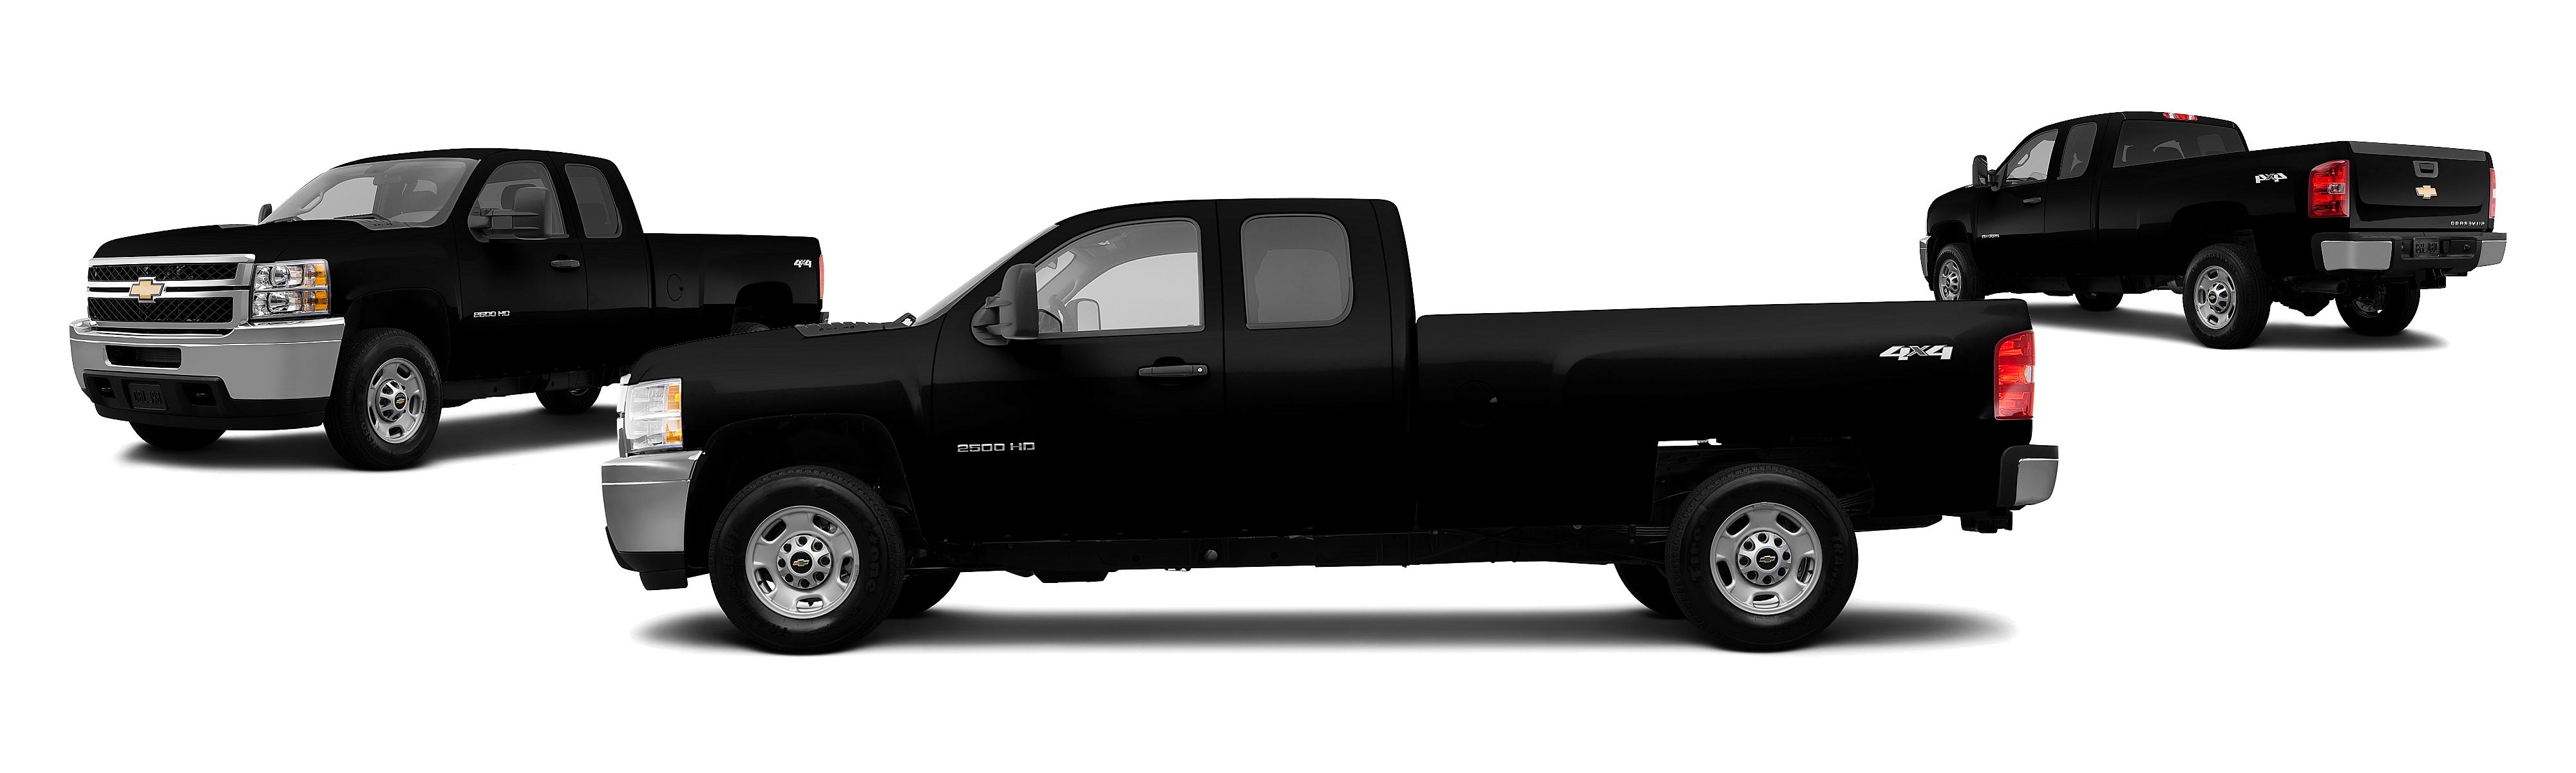 2013 chevrolet silverado 2500hd 4x2 lt 4dr extended cab sb research groovecar